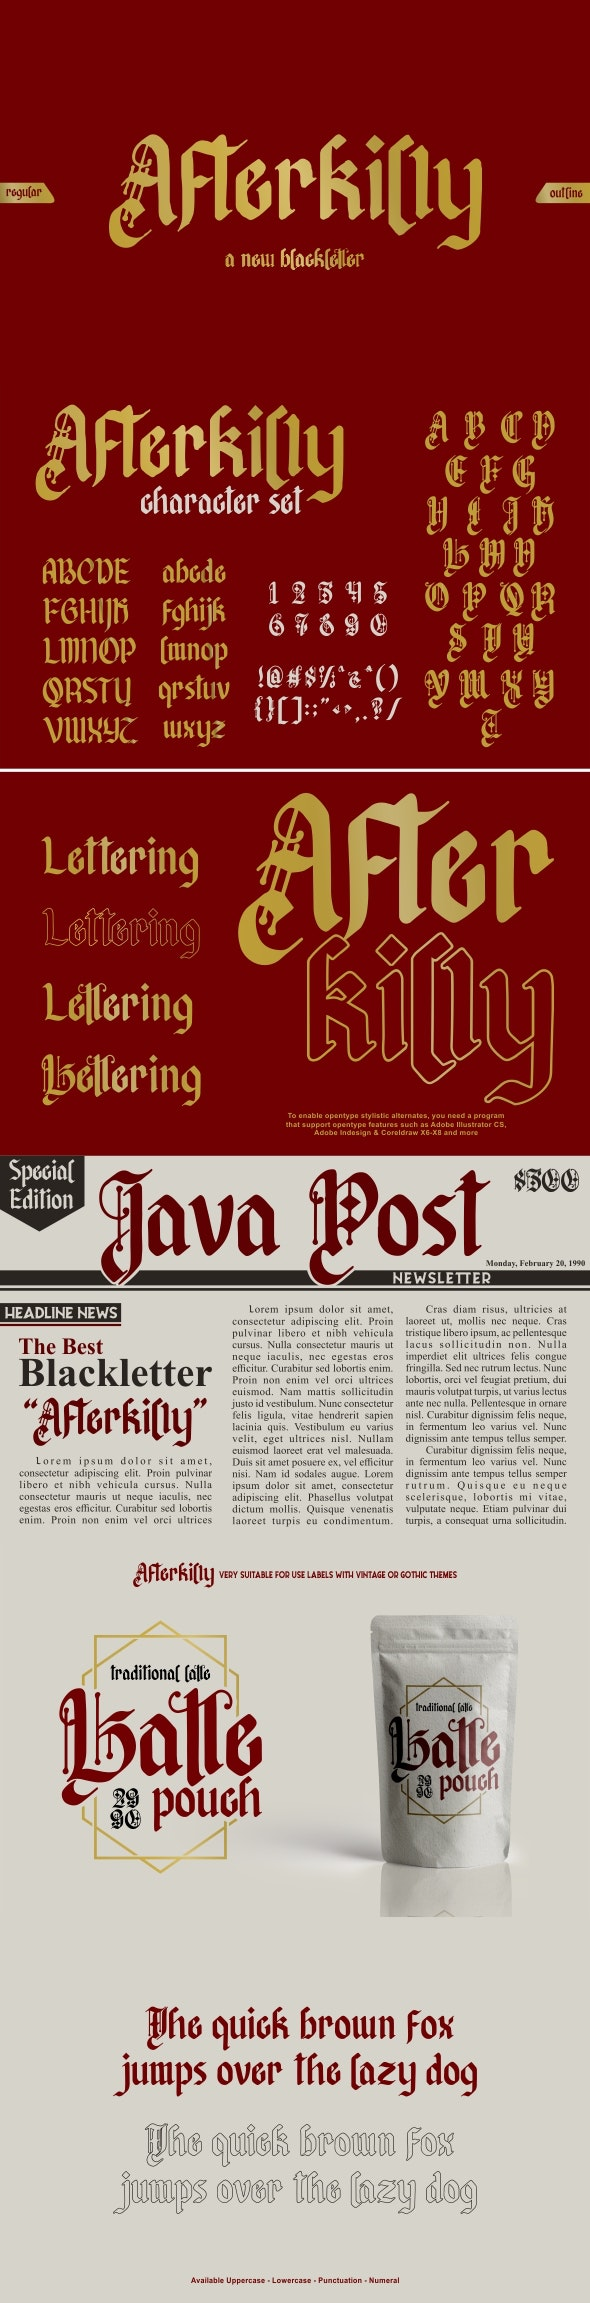 Afterkilly Blackletter - Gothic Decorative